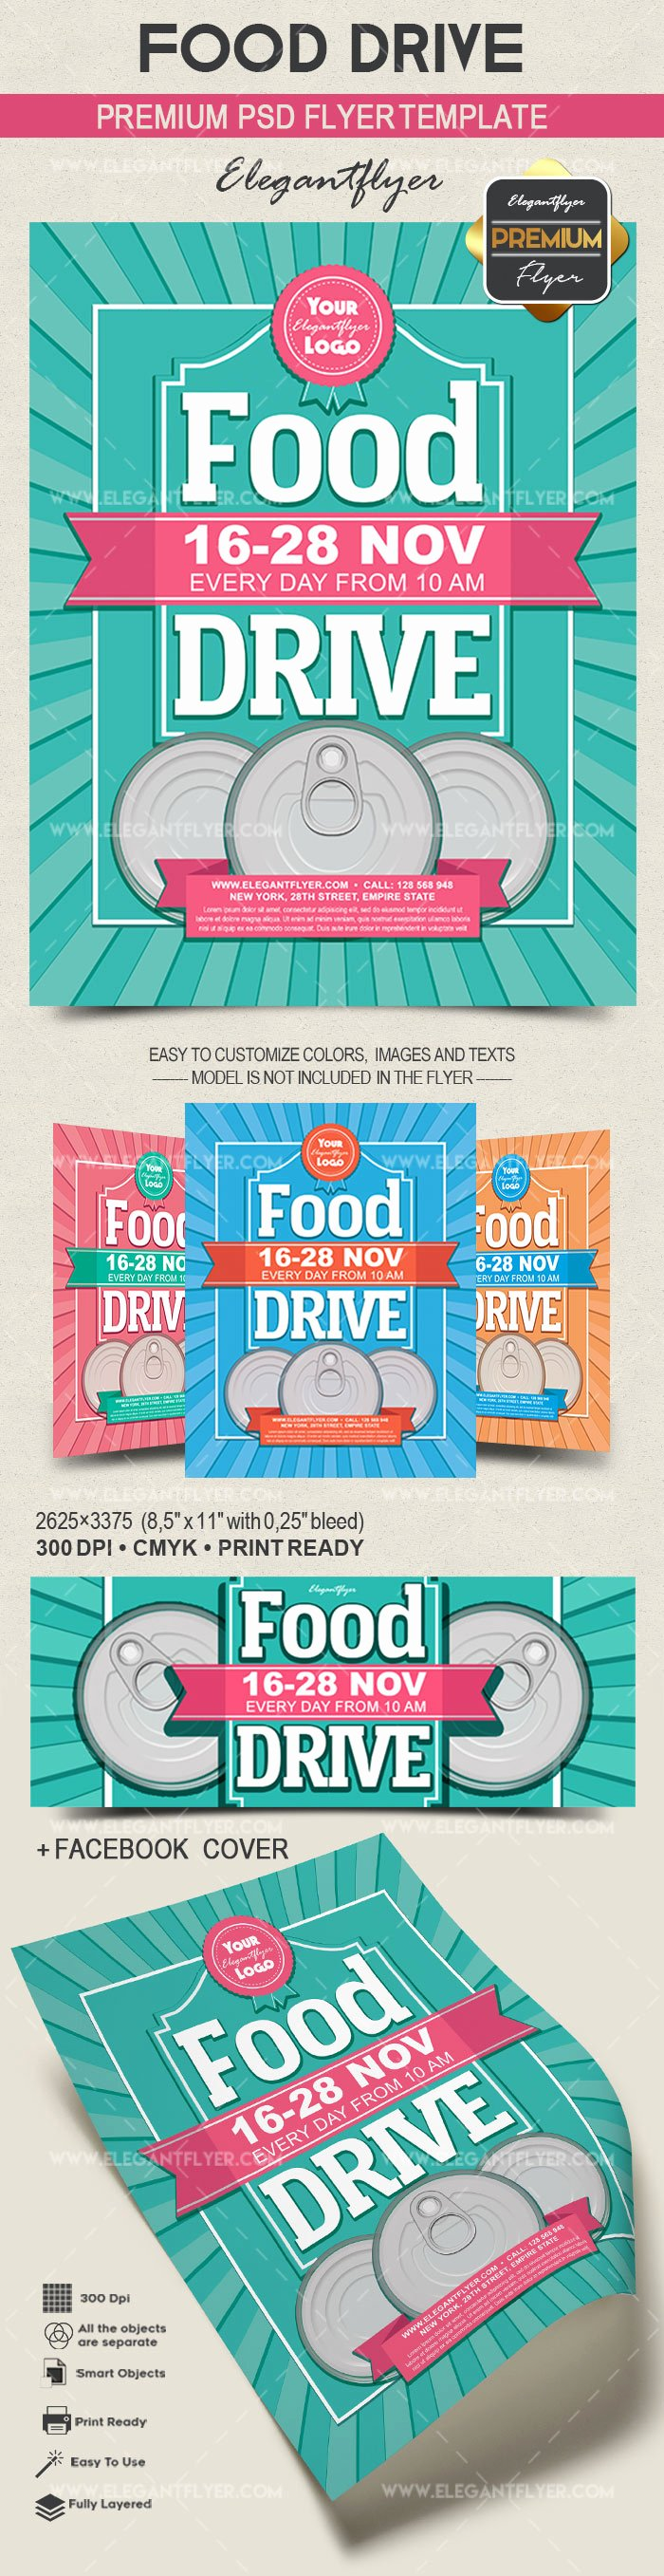 Canned Food Drive Flyer Template Elegant Food Drive – Flyer Psd Template – by Elegantflyer